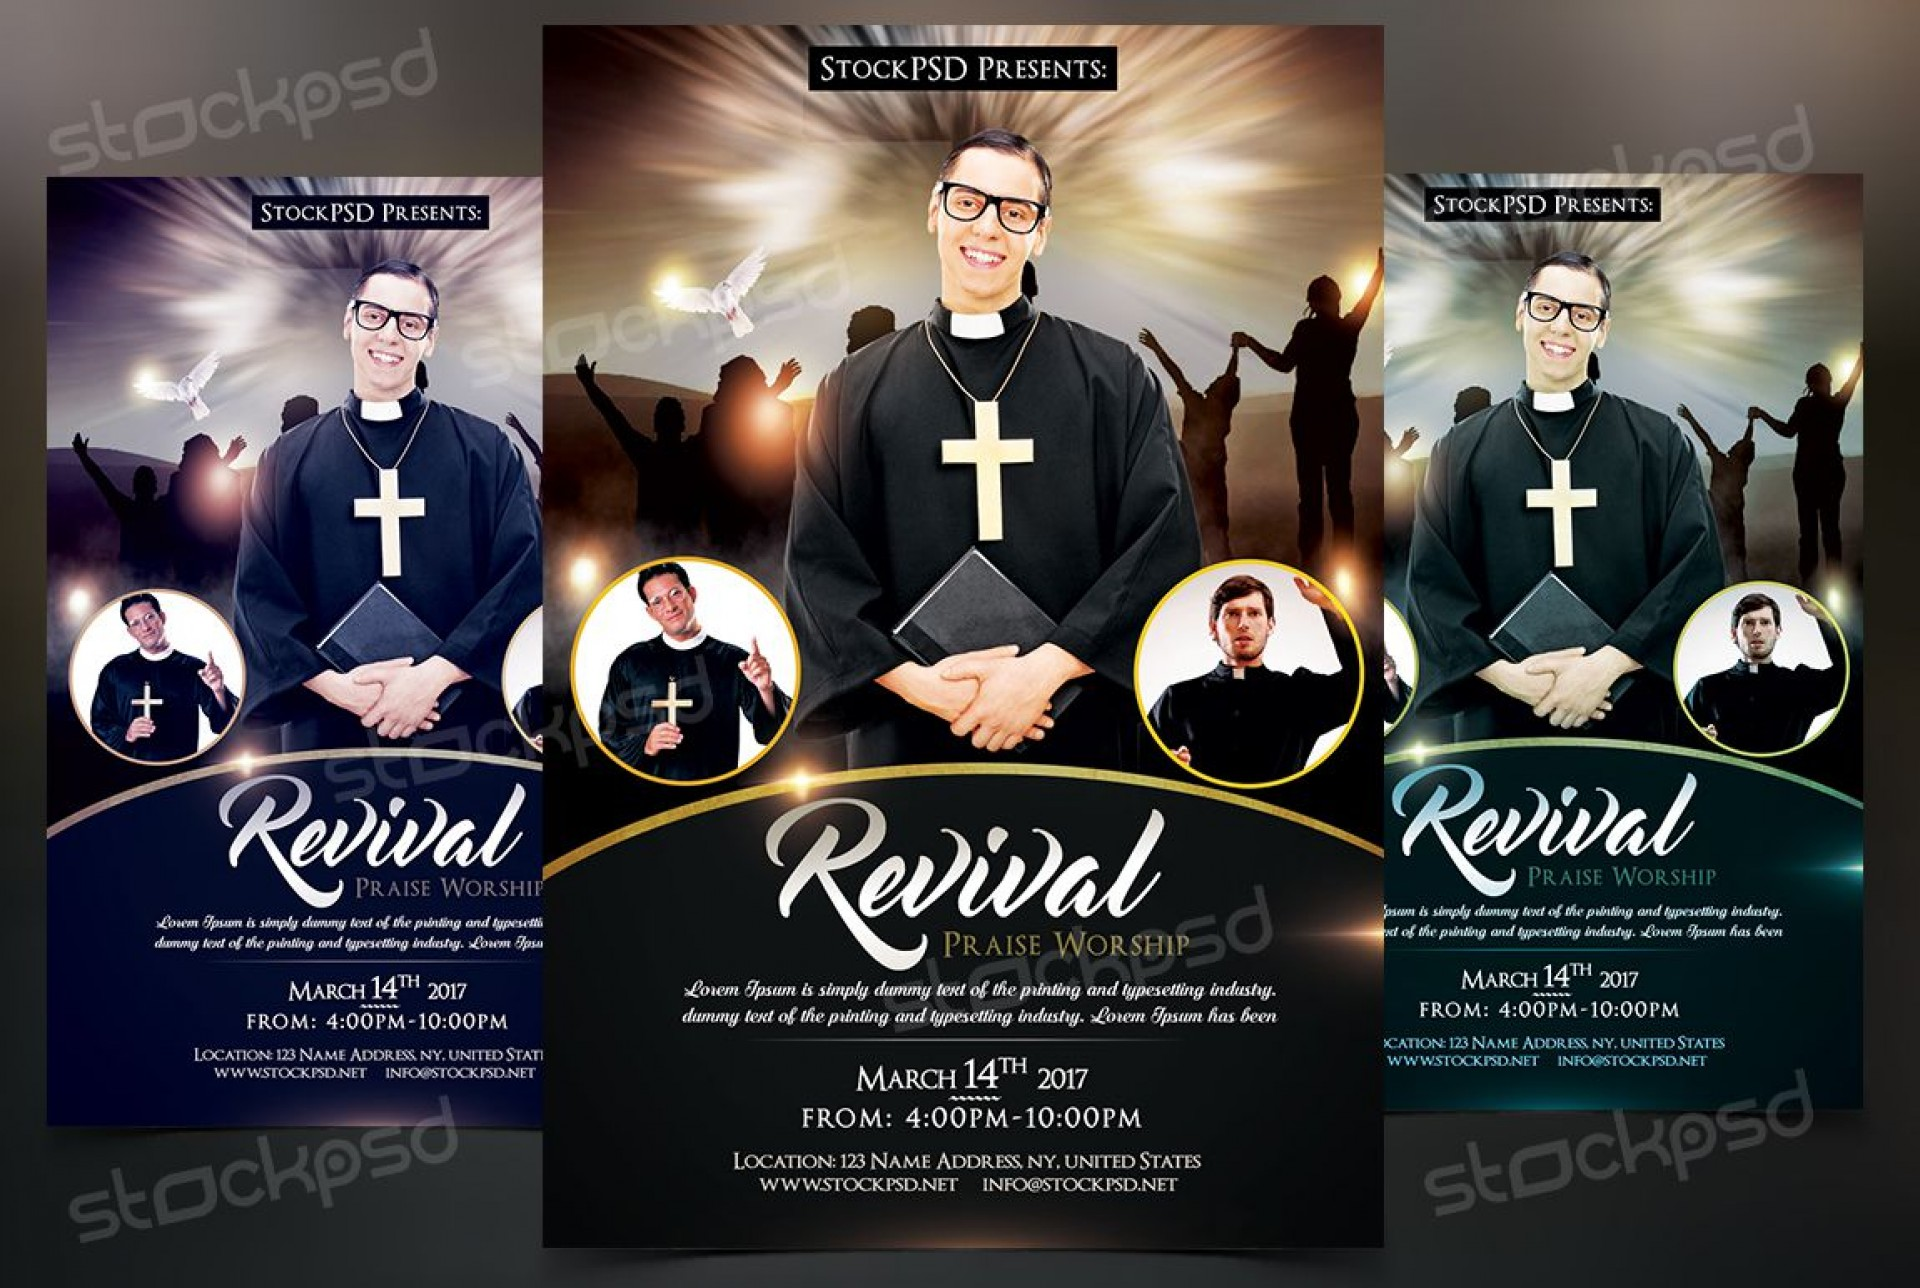 003 Exceptional Church Flyer Template Free High Def  Easter Anniversary Conference Psd1920